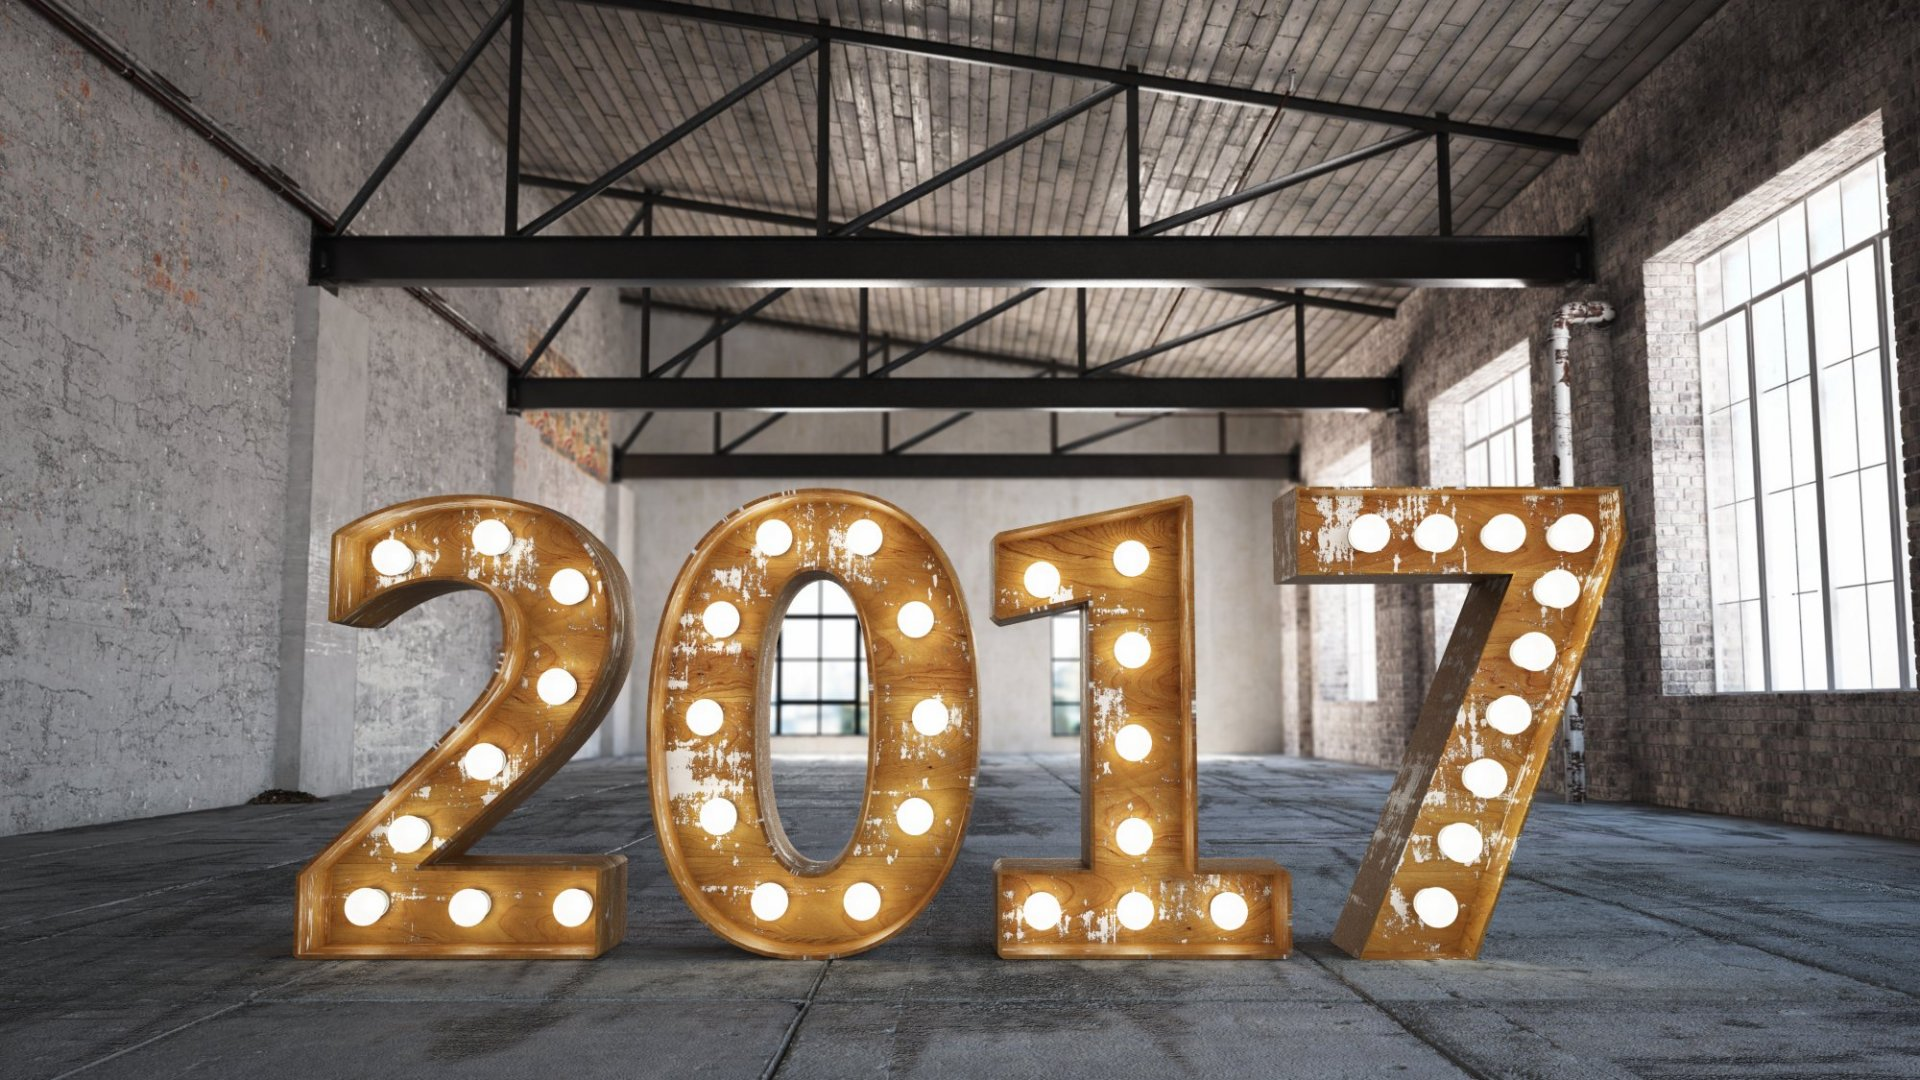 Marketing Predictions for 2017 From Top Industry Experts